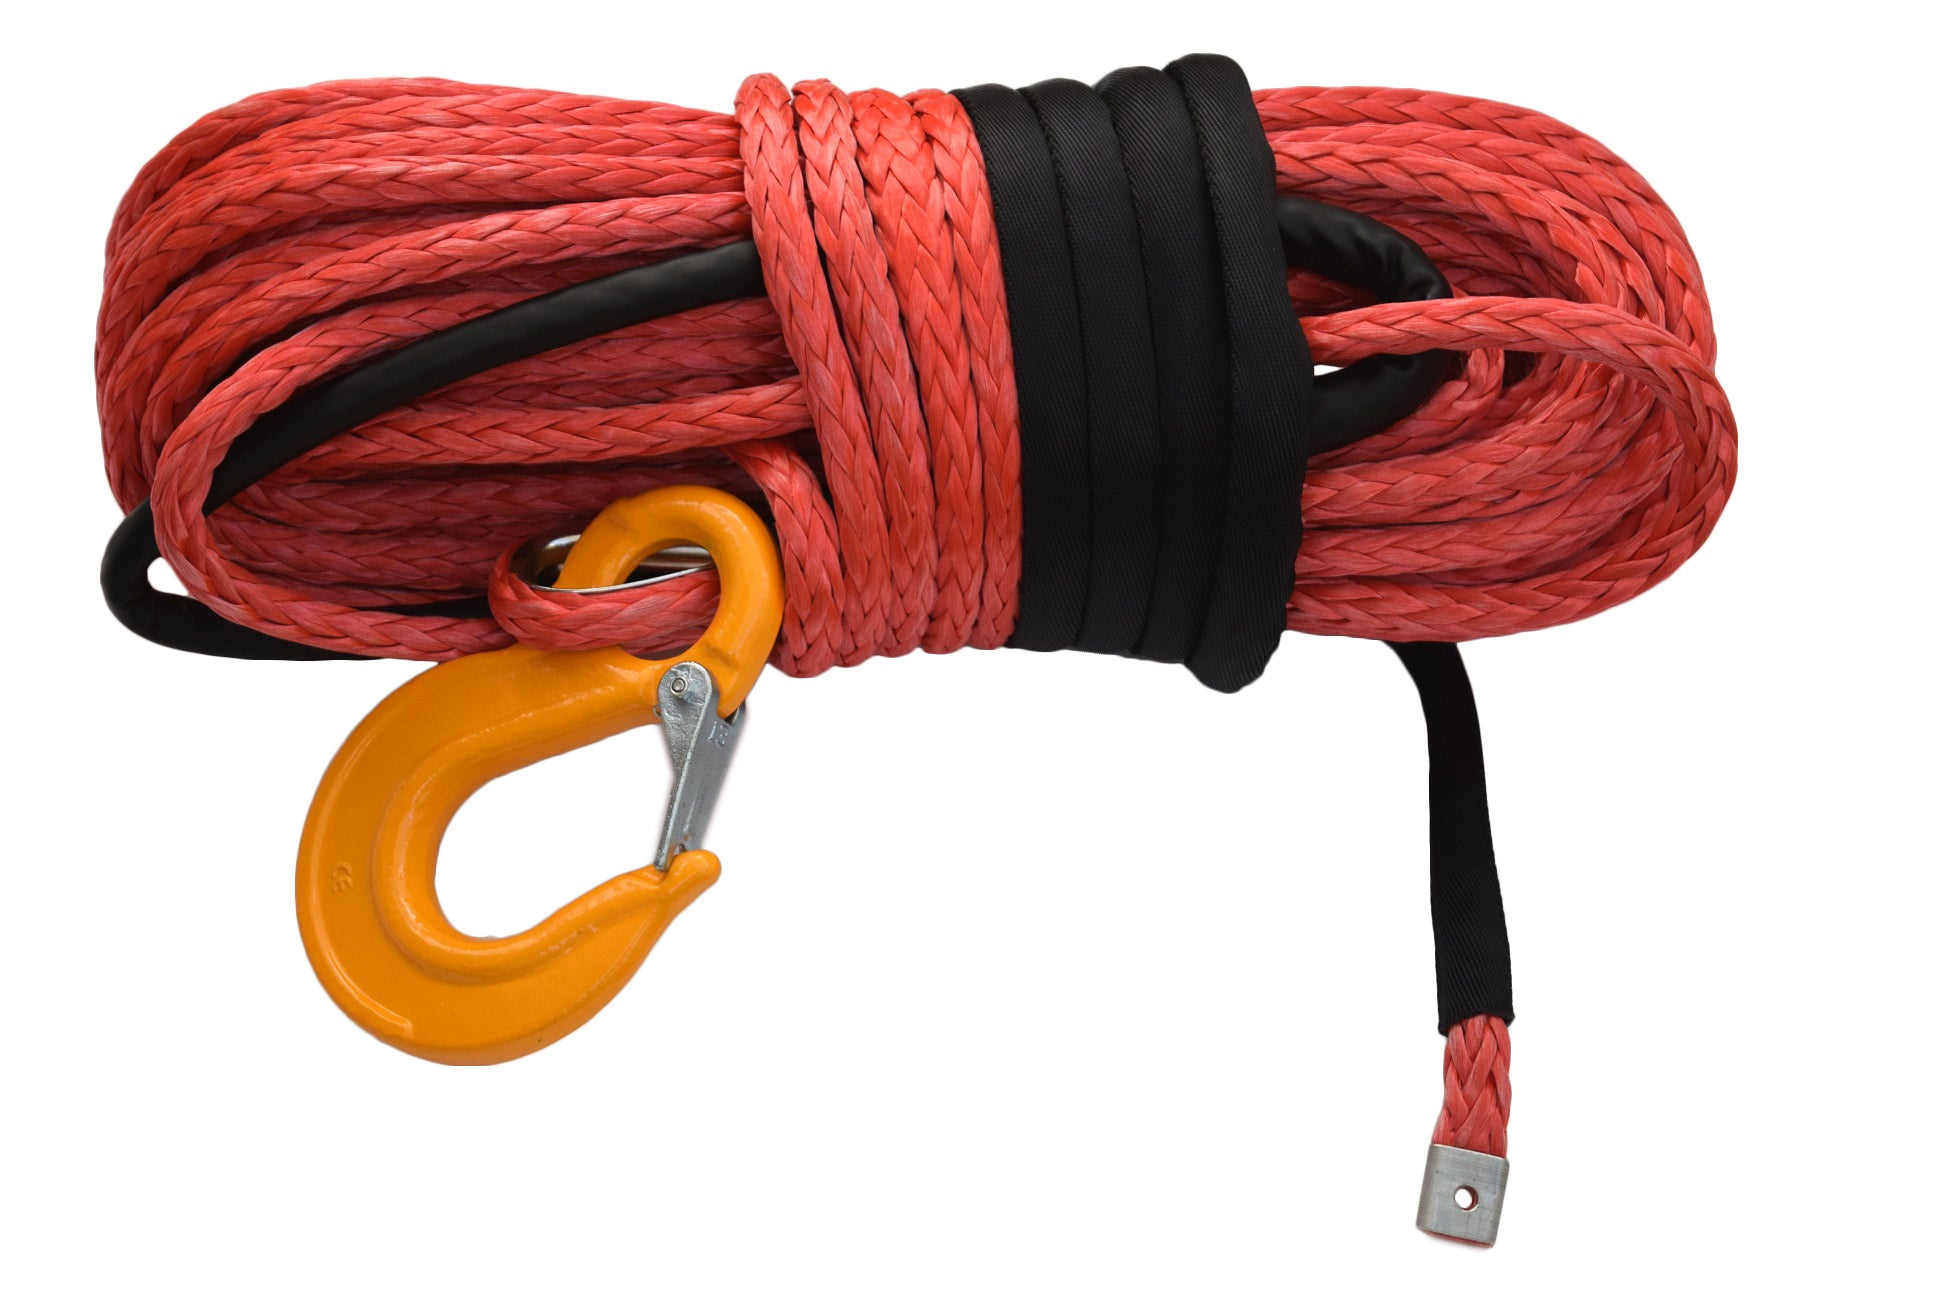 Free Shipping 14mm*45m Red Synthetic Winch Rope with Hook,ATV Winch Cable, Offroad Rope for Accessaries,UHMWPE Rope